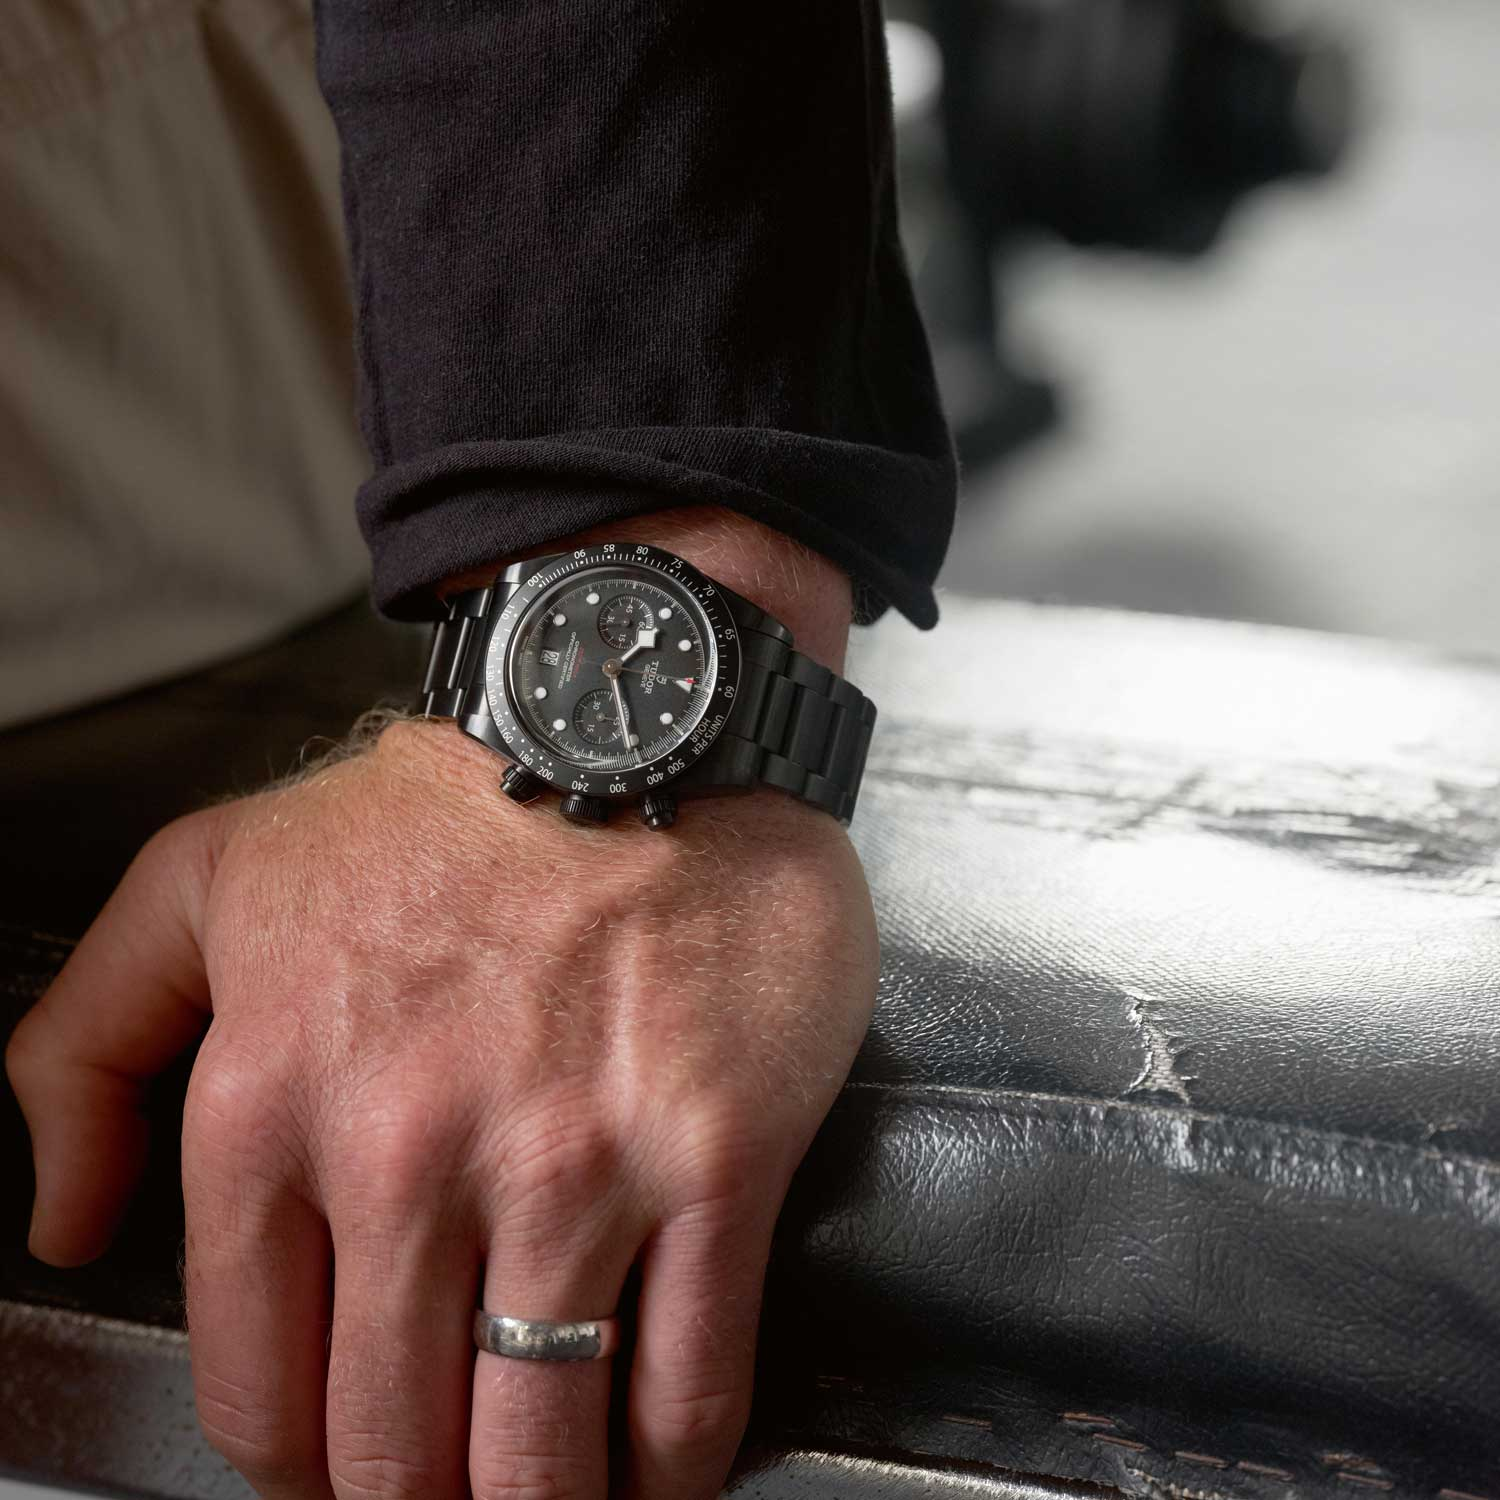 Beauden Barrett is helping launch the Black Bay Chrono Dark ahead of the World Cup in Japan